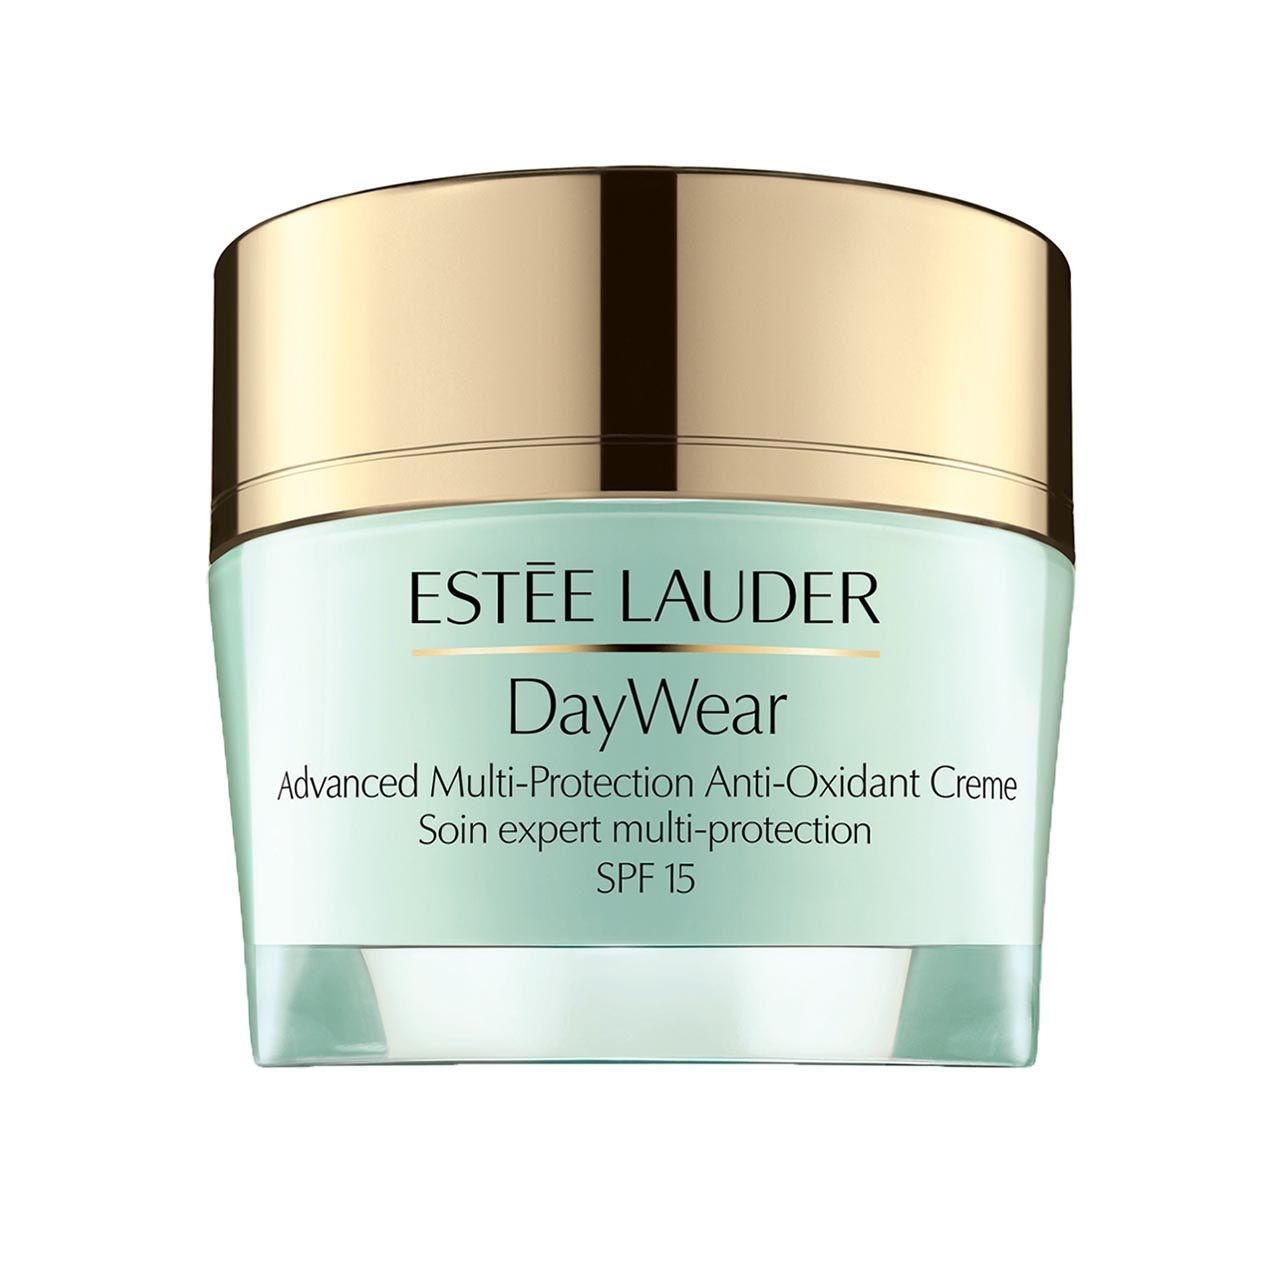 Estee Lauder DayWear Advanced MultiProtection crema antiossidante SPF 15 50 ml